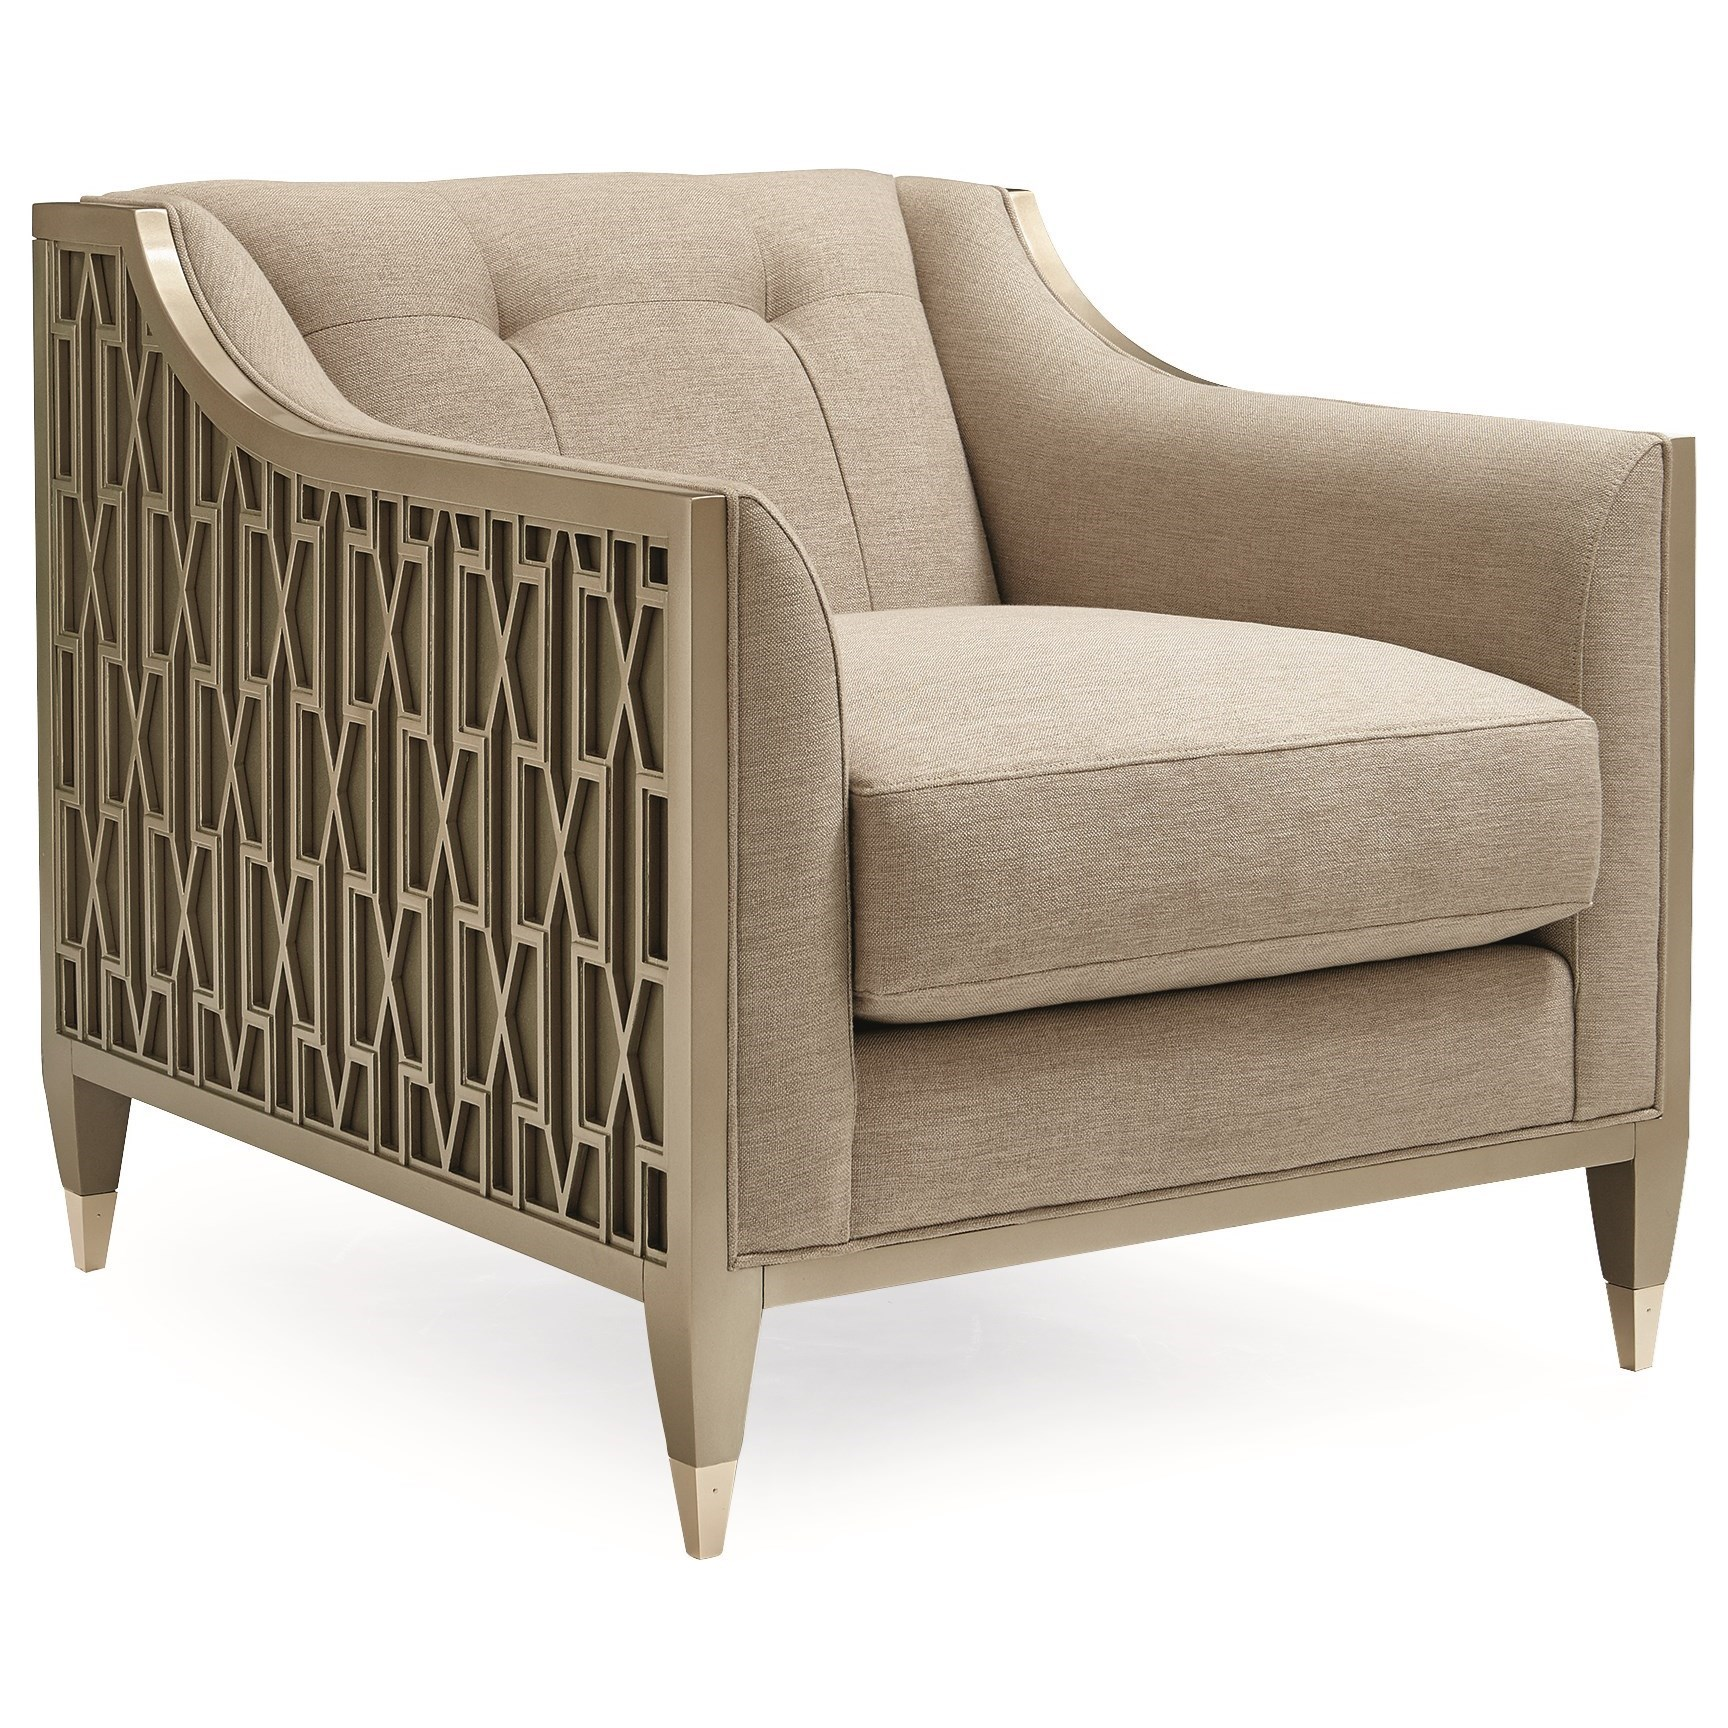 """Caracole Classic """"Chair-ish"""" Upholstered Chair by Caracole at Baer's Furniture"""